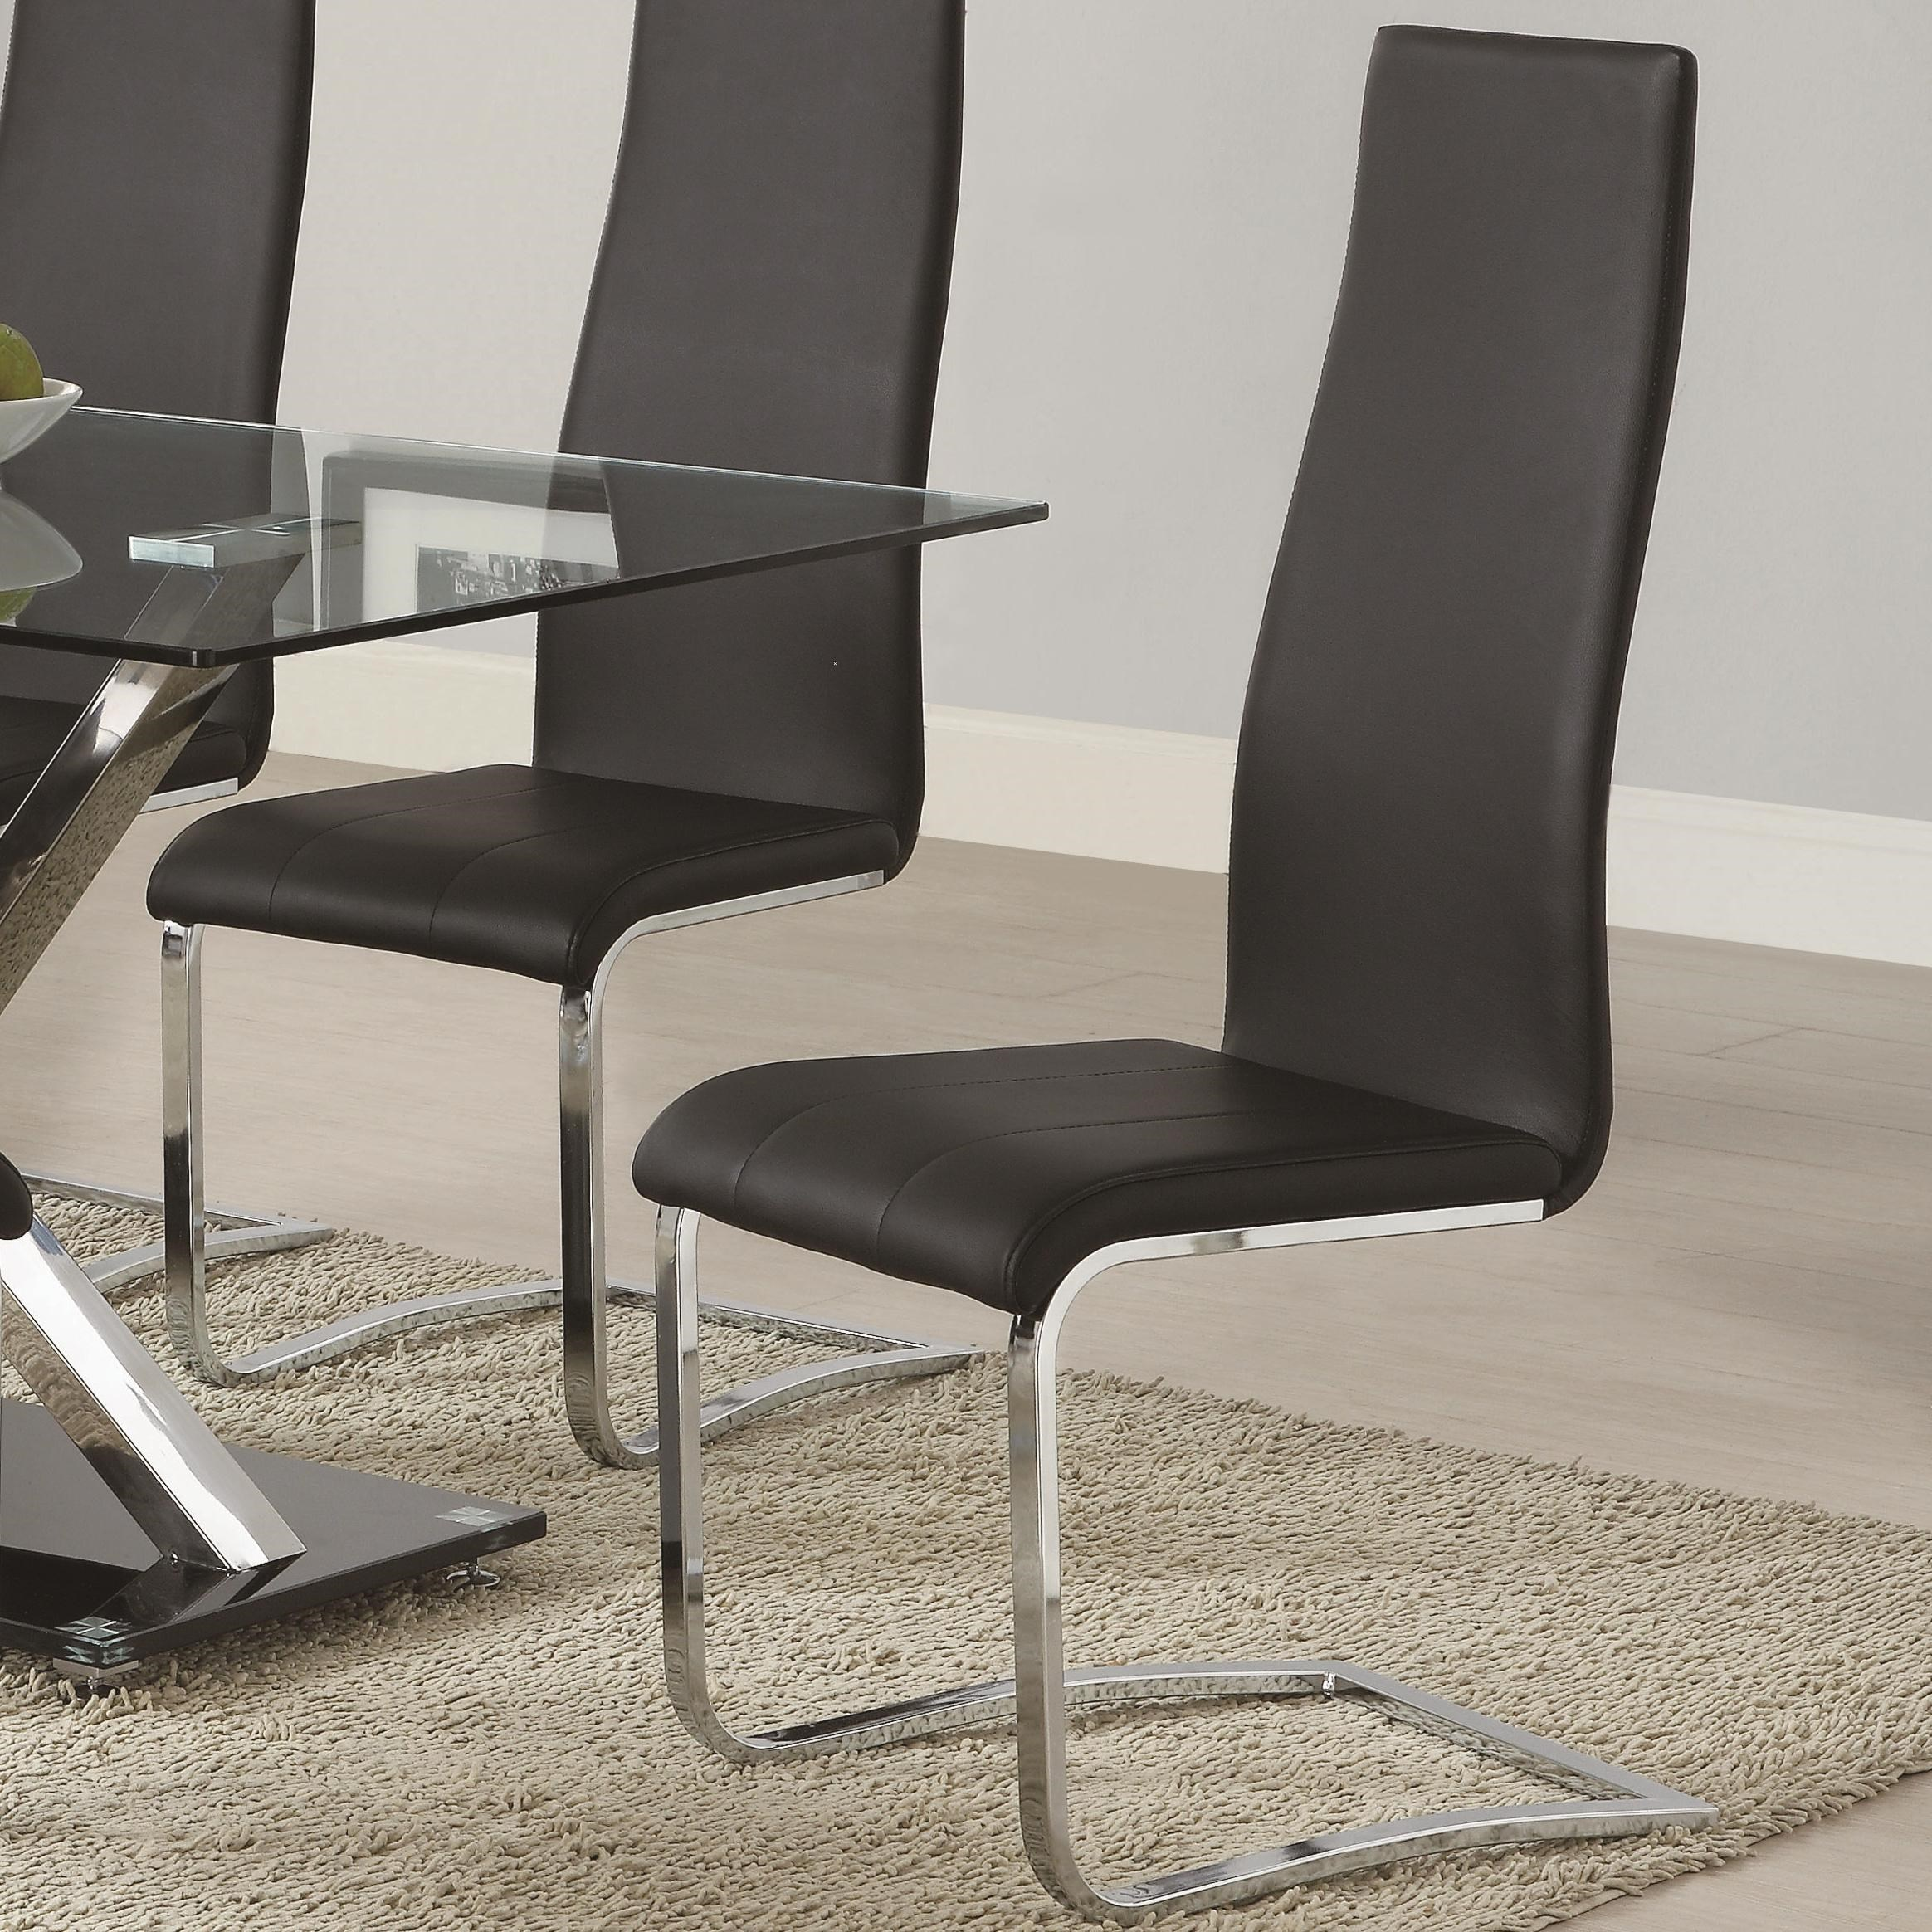 Modern Leather Chairs Modern Dining Black Faux Leather Dining Chair With Chrome Legs By Coaster At Dunk Bright Furniture